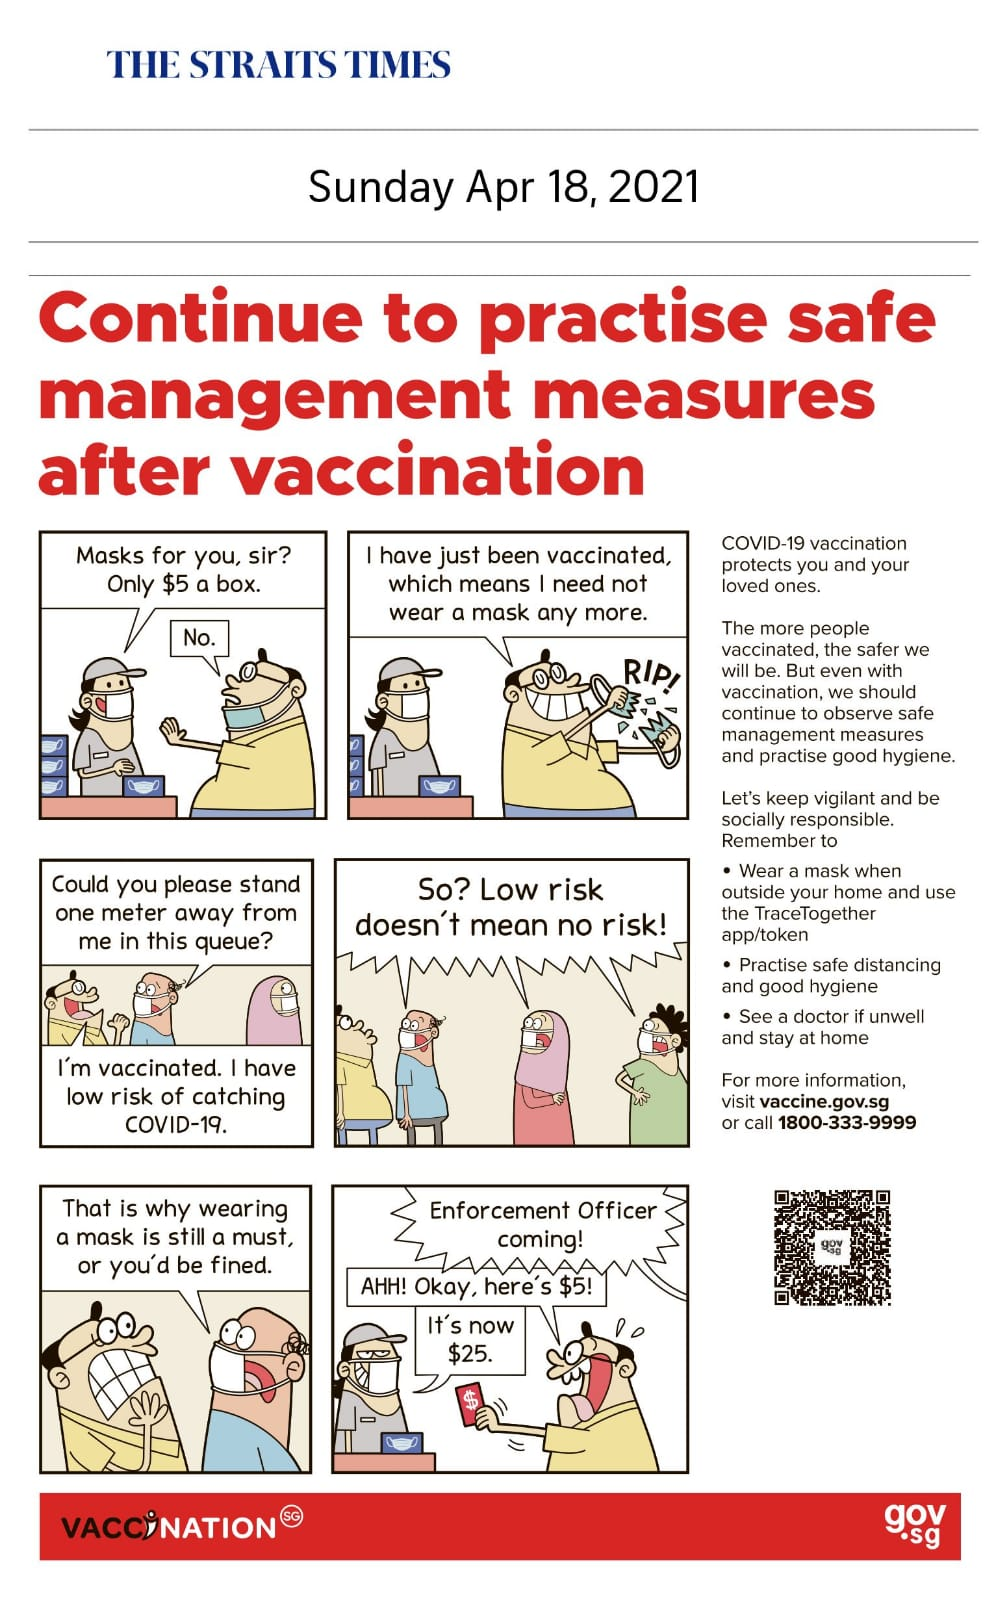 Continue to Practice Safe Management Measures After Vaccination - Published in The Straits Times April 18, 2021